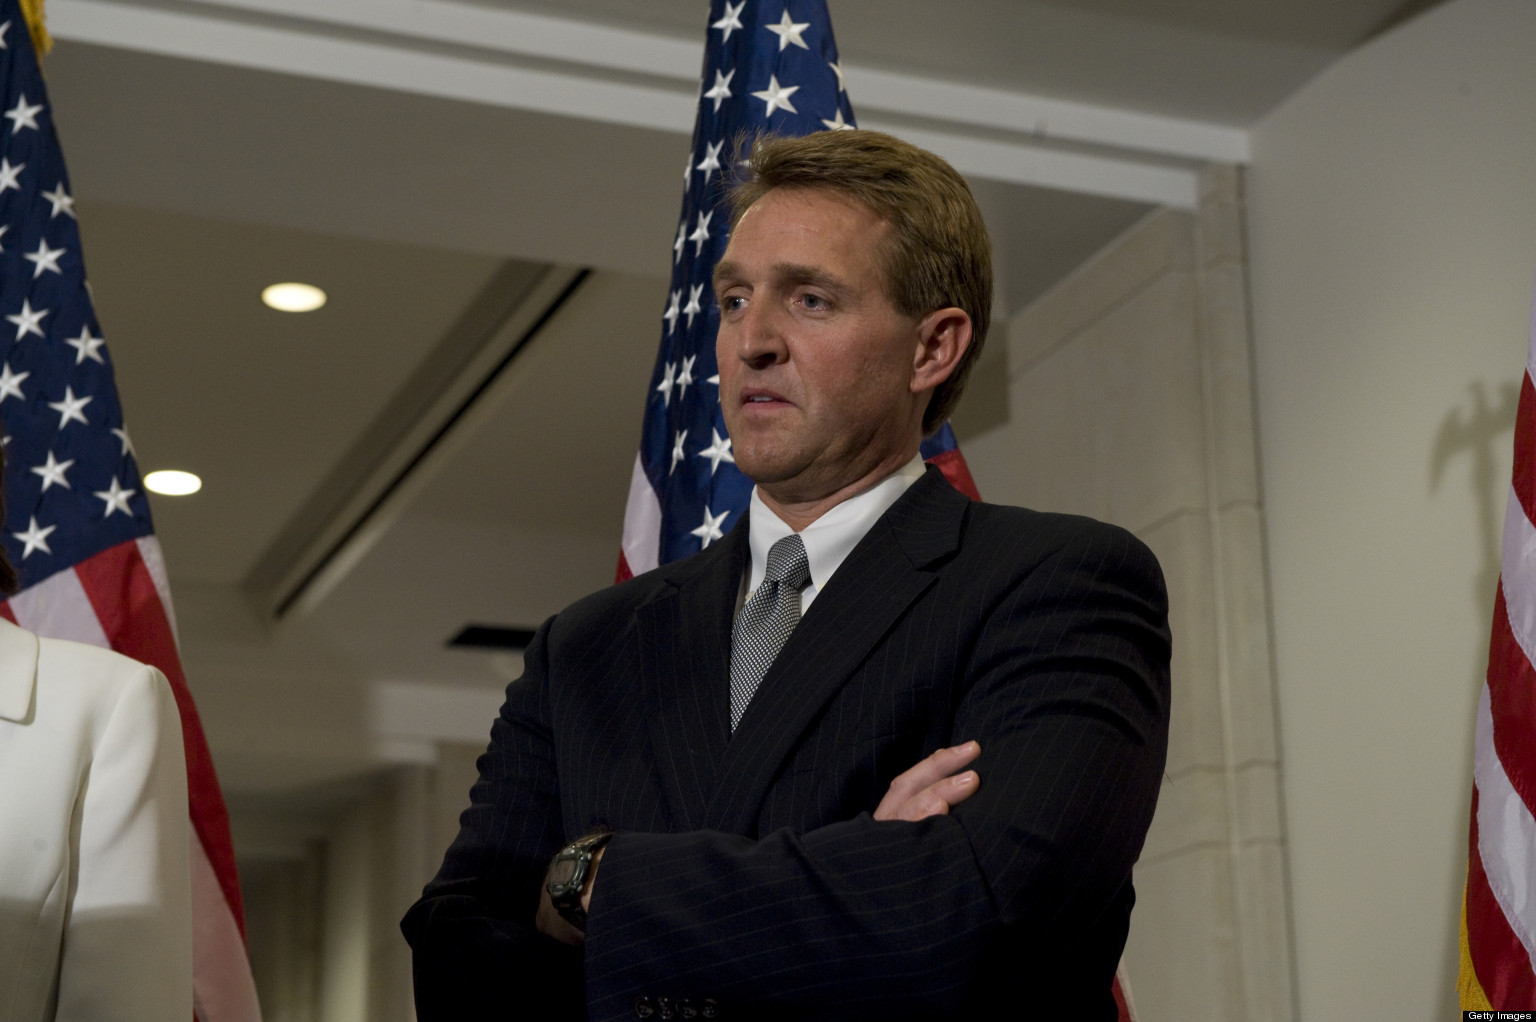 GOP Senator Votes Against Background Checks After Telling Shooting Victim's Mother He Supported Them